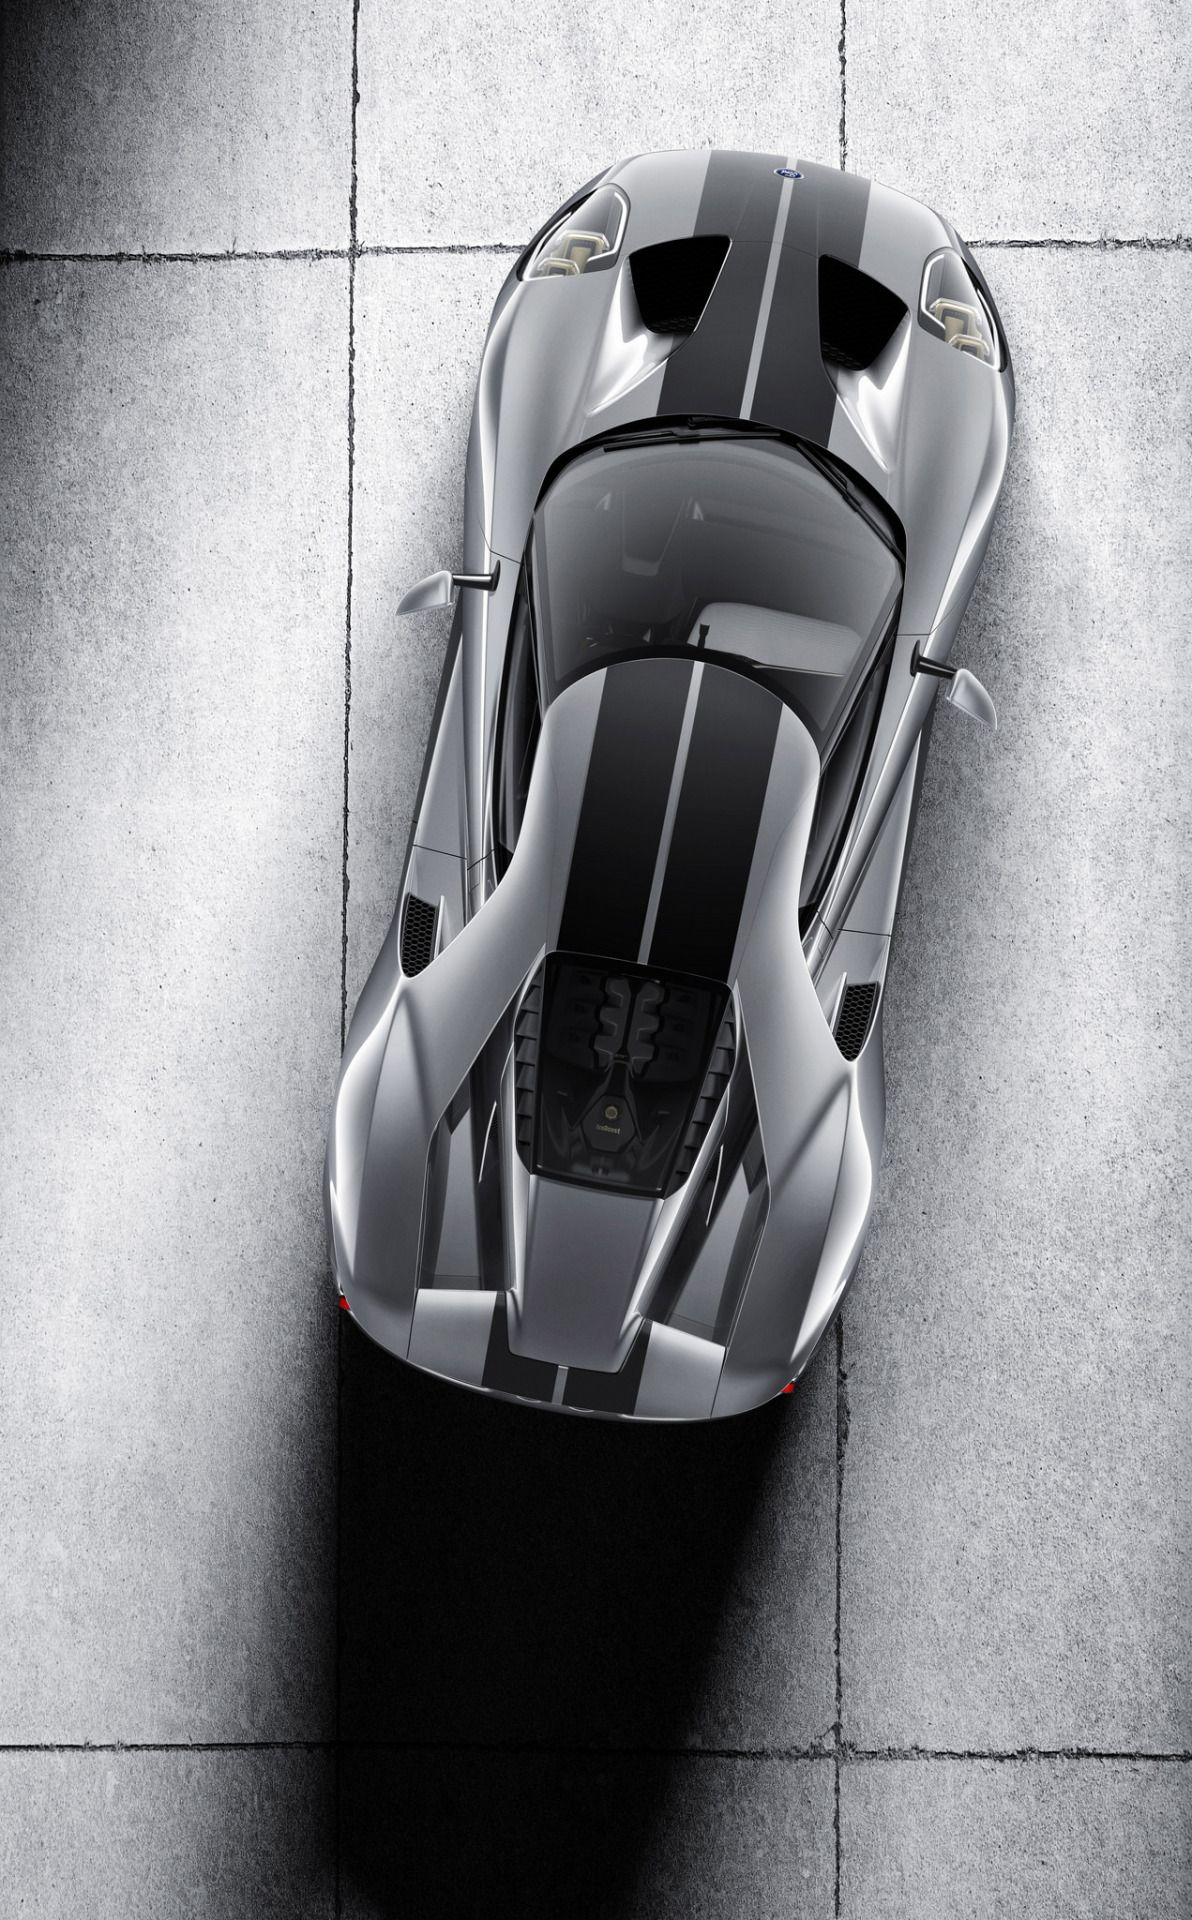 The All New Ford Gt Supercar In Liquid Silver In 2020 Ford Gt Cool Sports Cars Super Cars